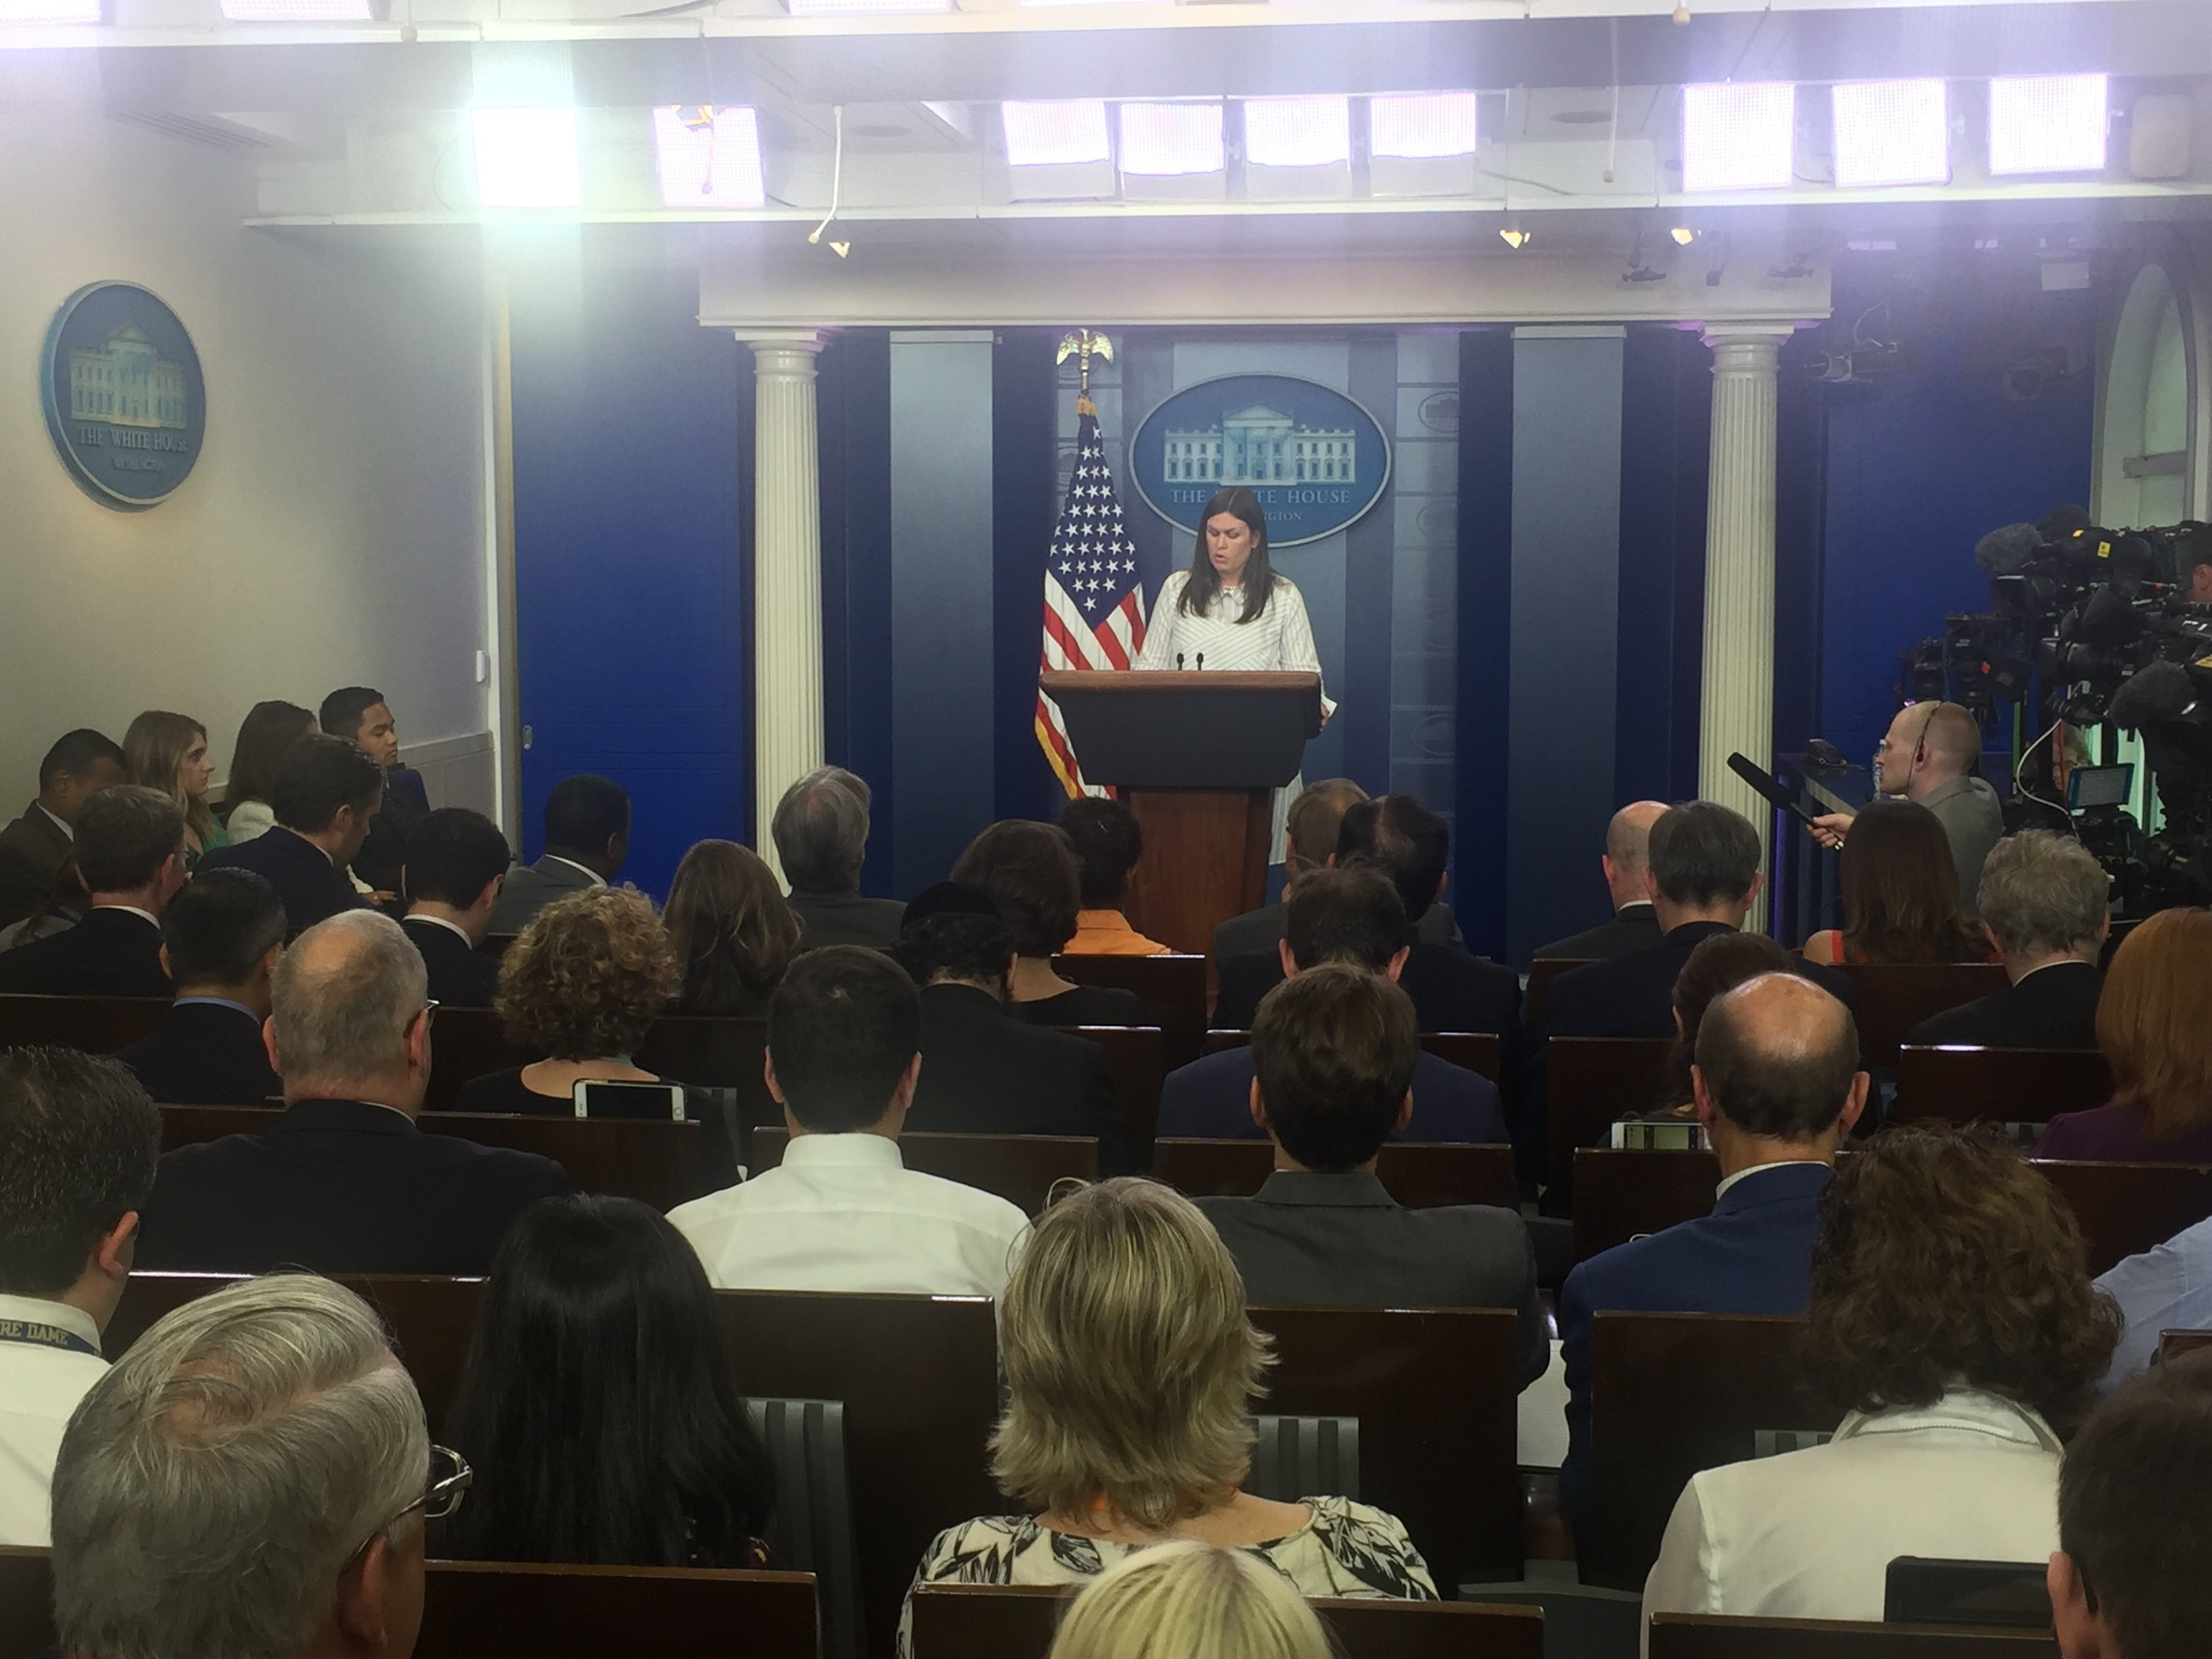 Sarah Huckabee Sanders speaks at the White House press briefing on July 12, 2017.